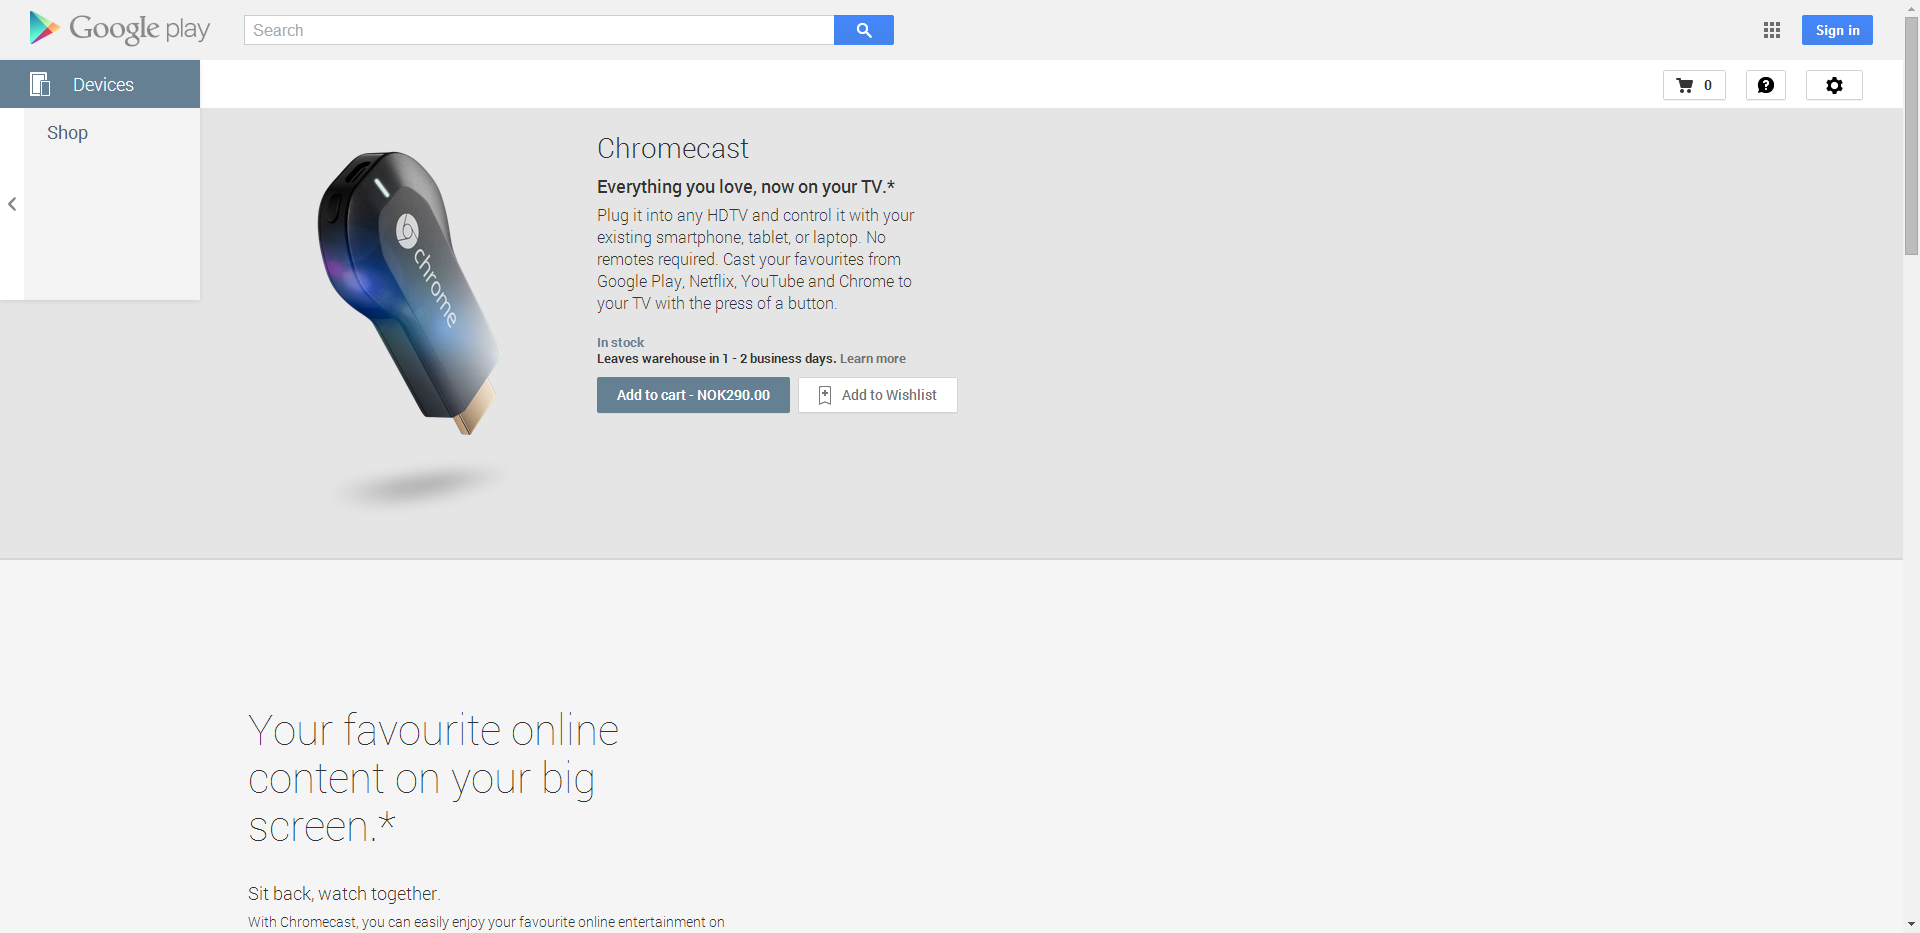 Google Play Devices Now Available In Norway And Switzerland